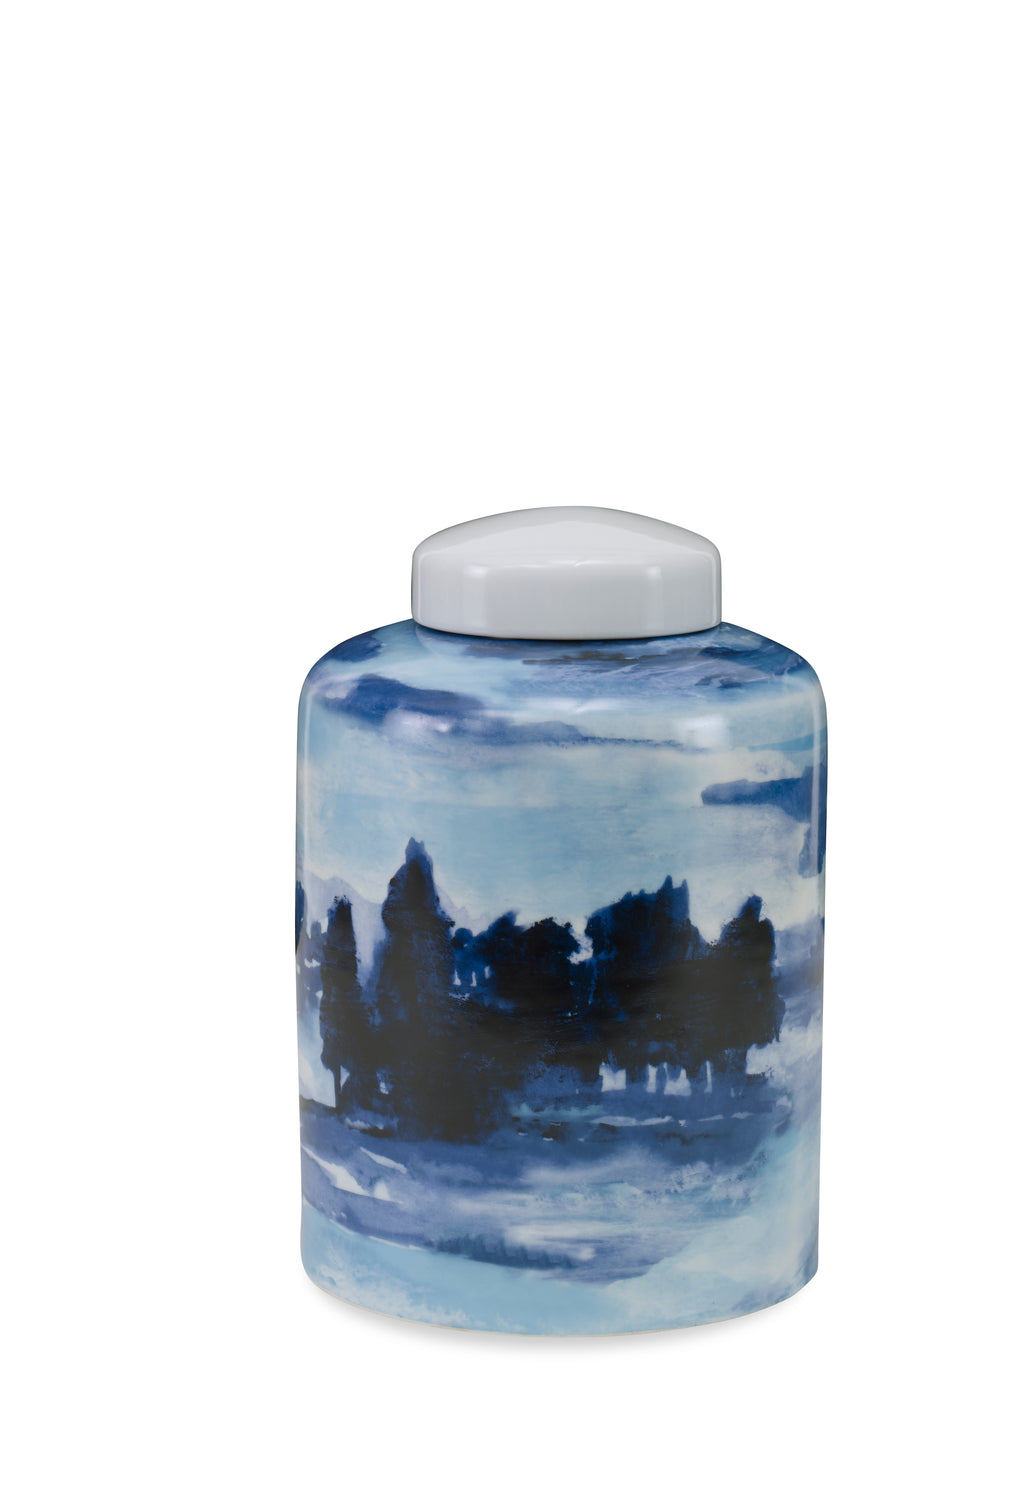 Sheila Lidded Jar, Small CL Blue - White